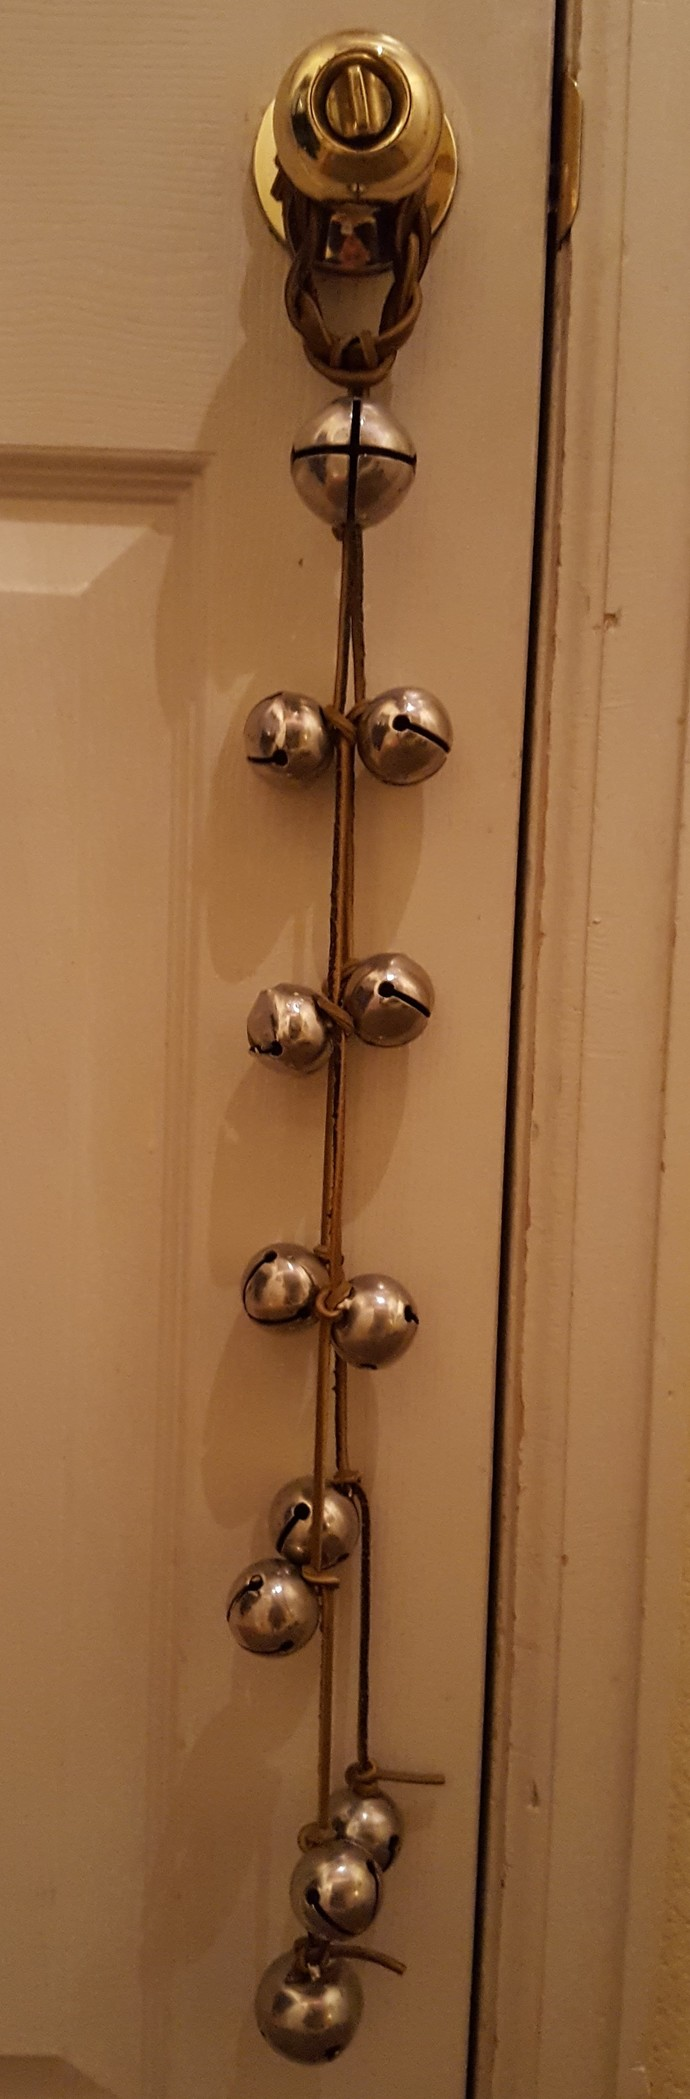 sleigh bell door hanger by Why Knot, $30.00 USD | Knots | Pinterest ...